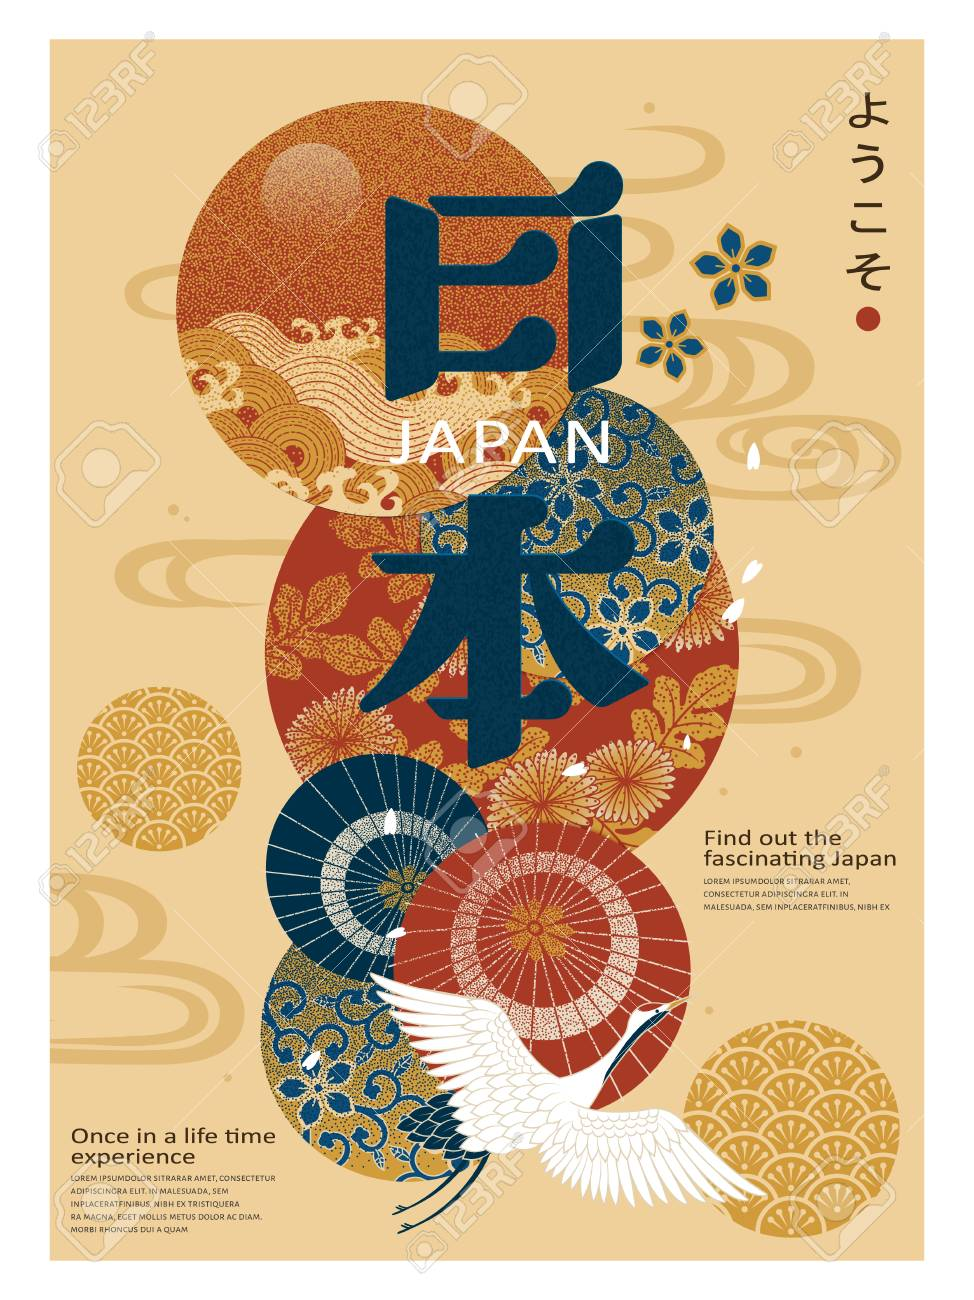 Traditional Japan travel concept, elegant pattern and red crowned crane elements, welcome to japan in Japanese word - 90063667